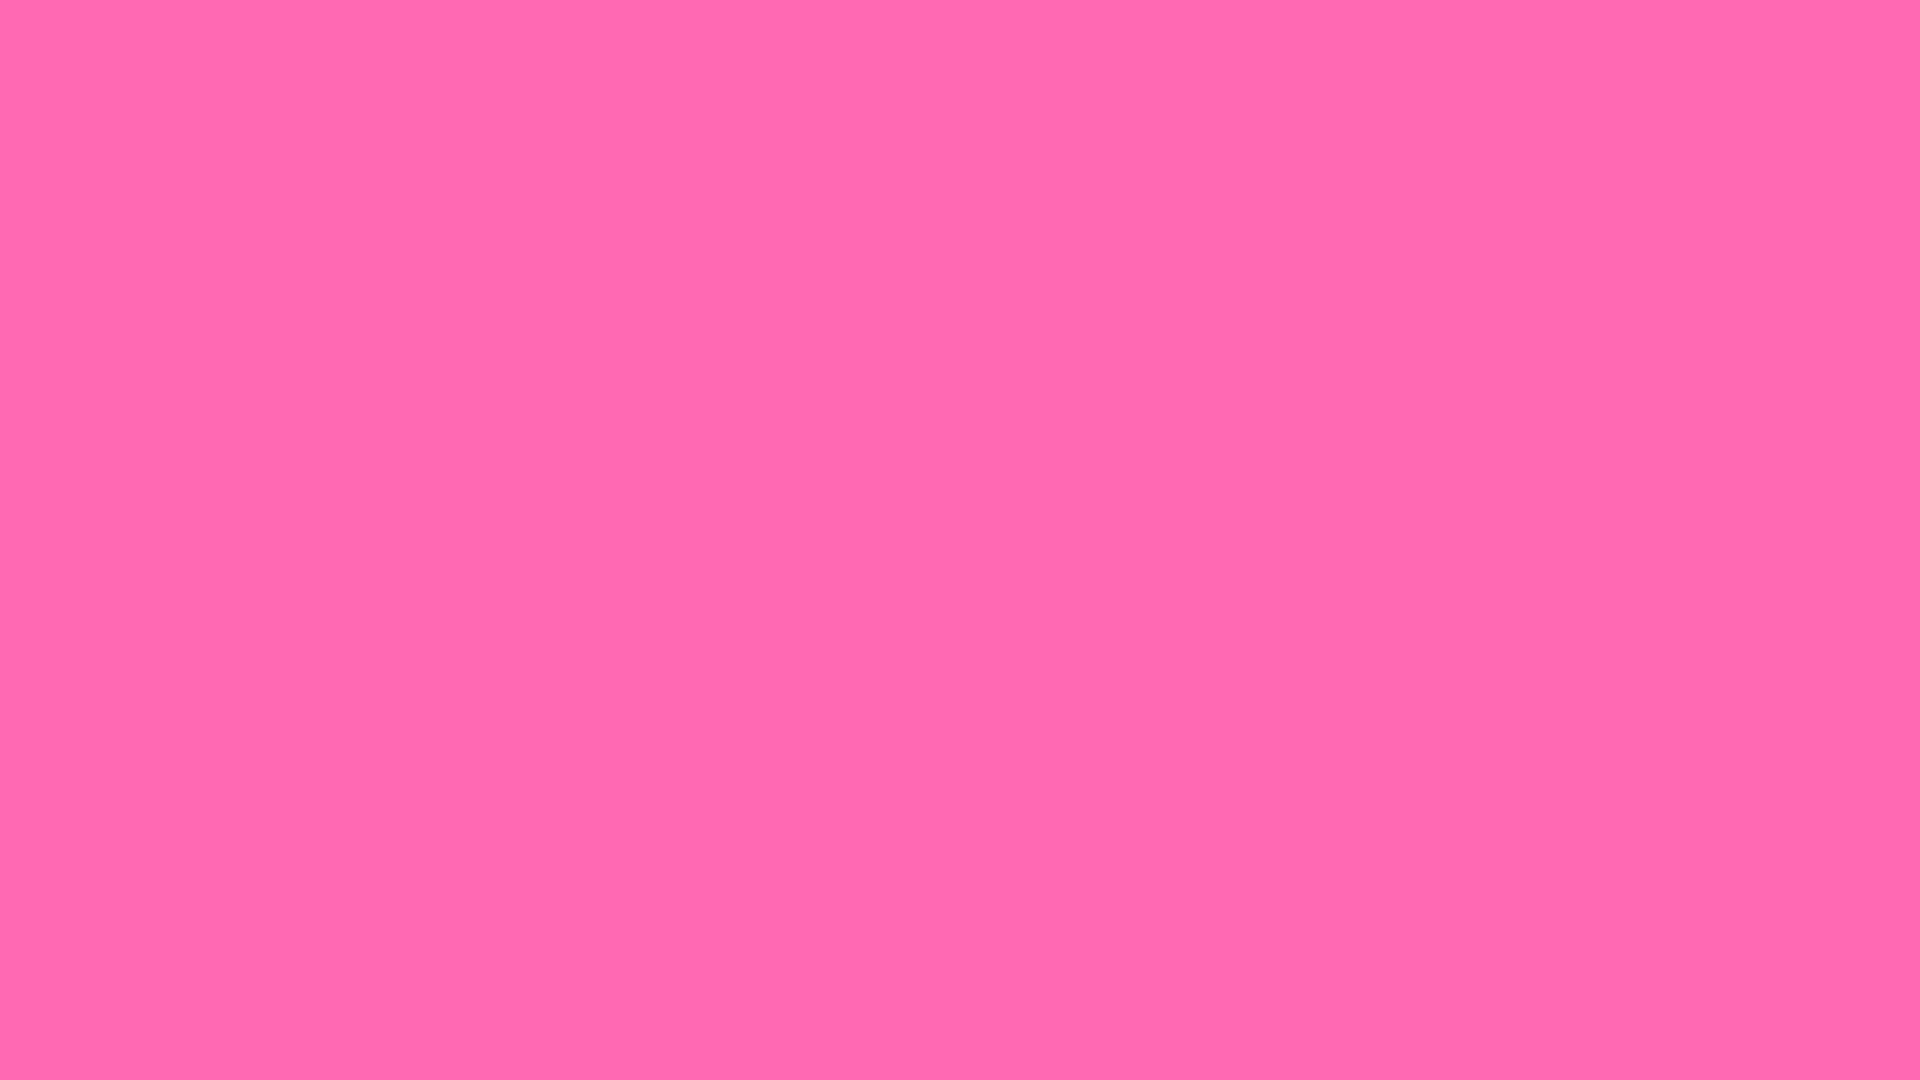 Pink solid color background view and download the below background 1920x1080